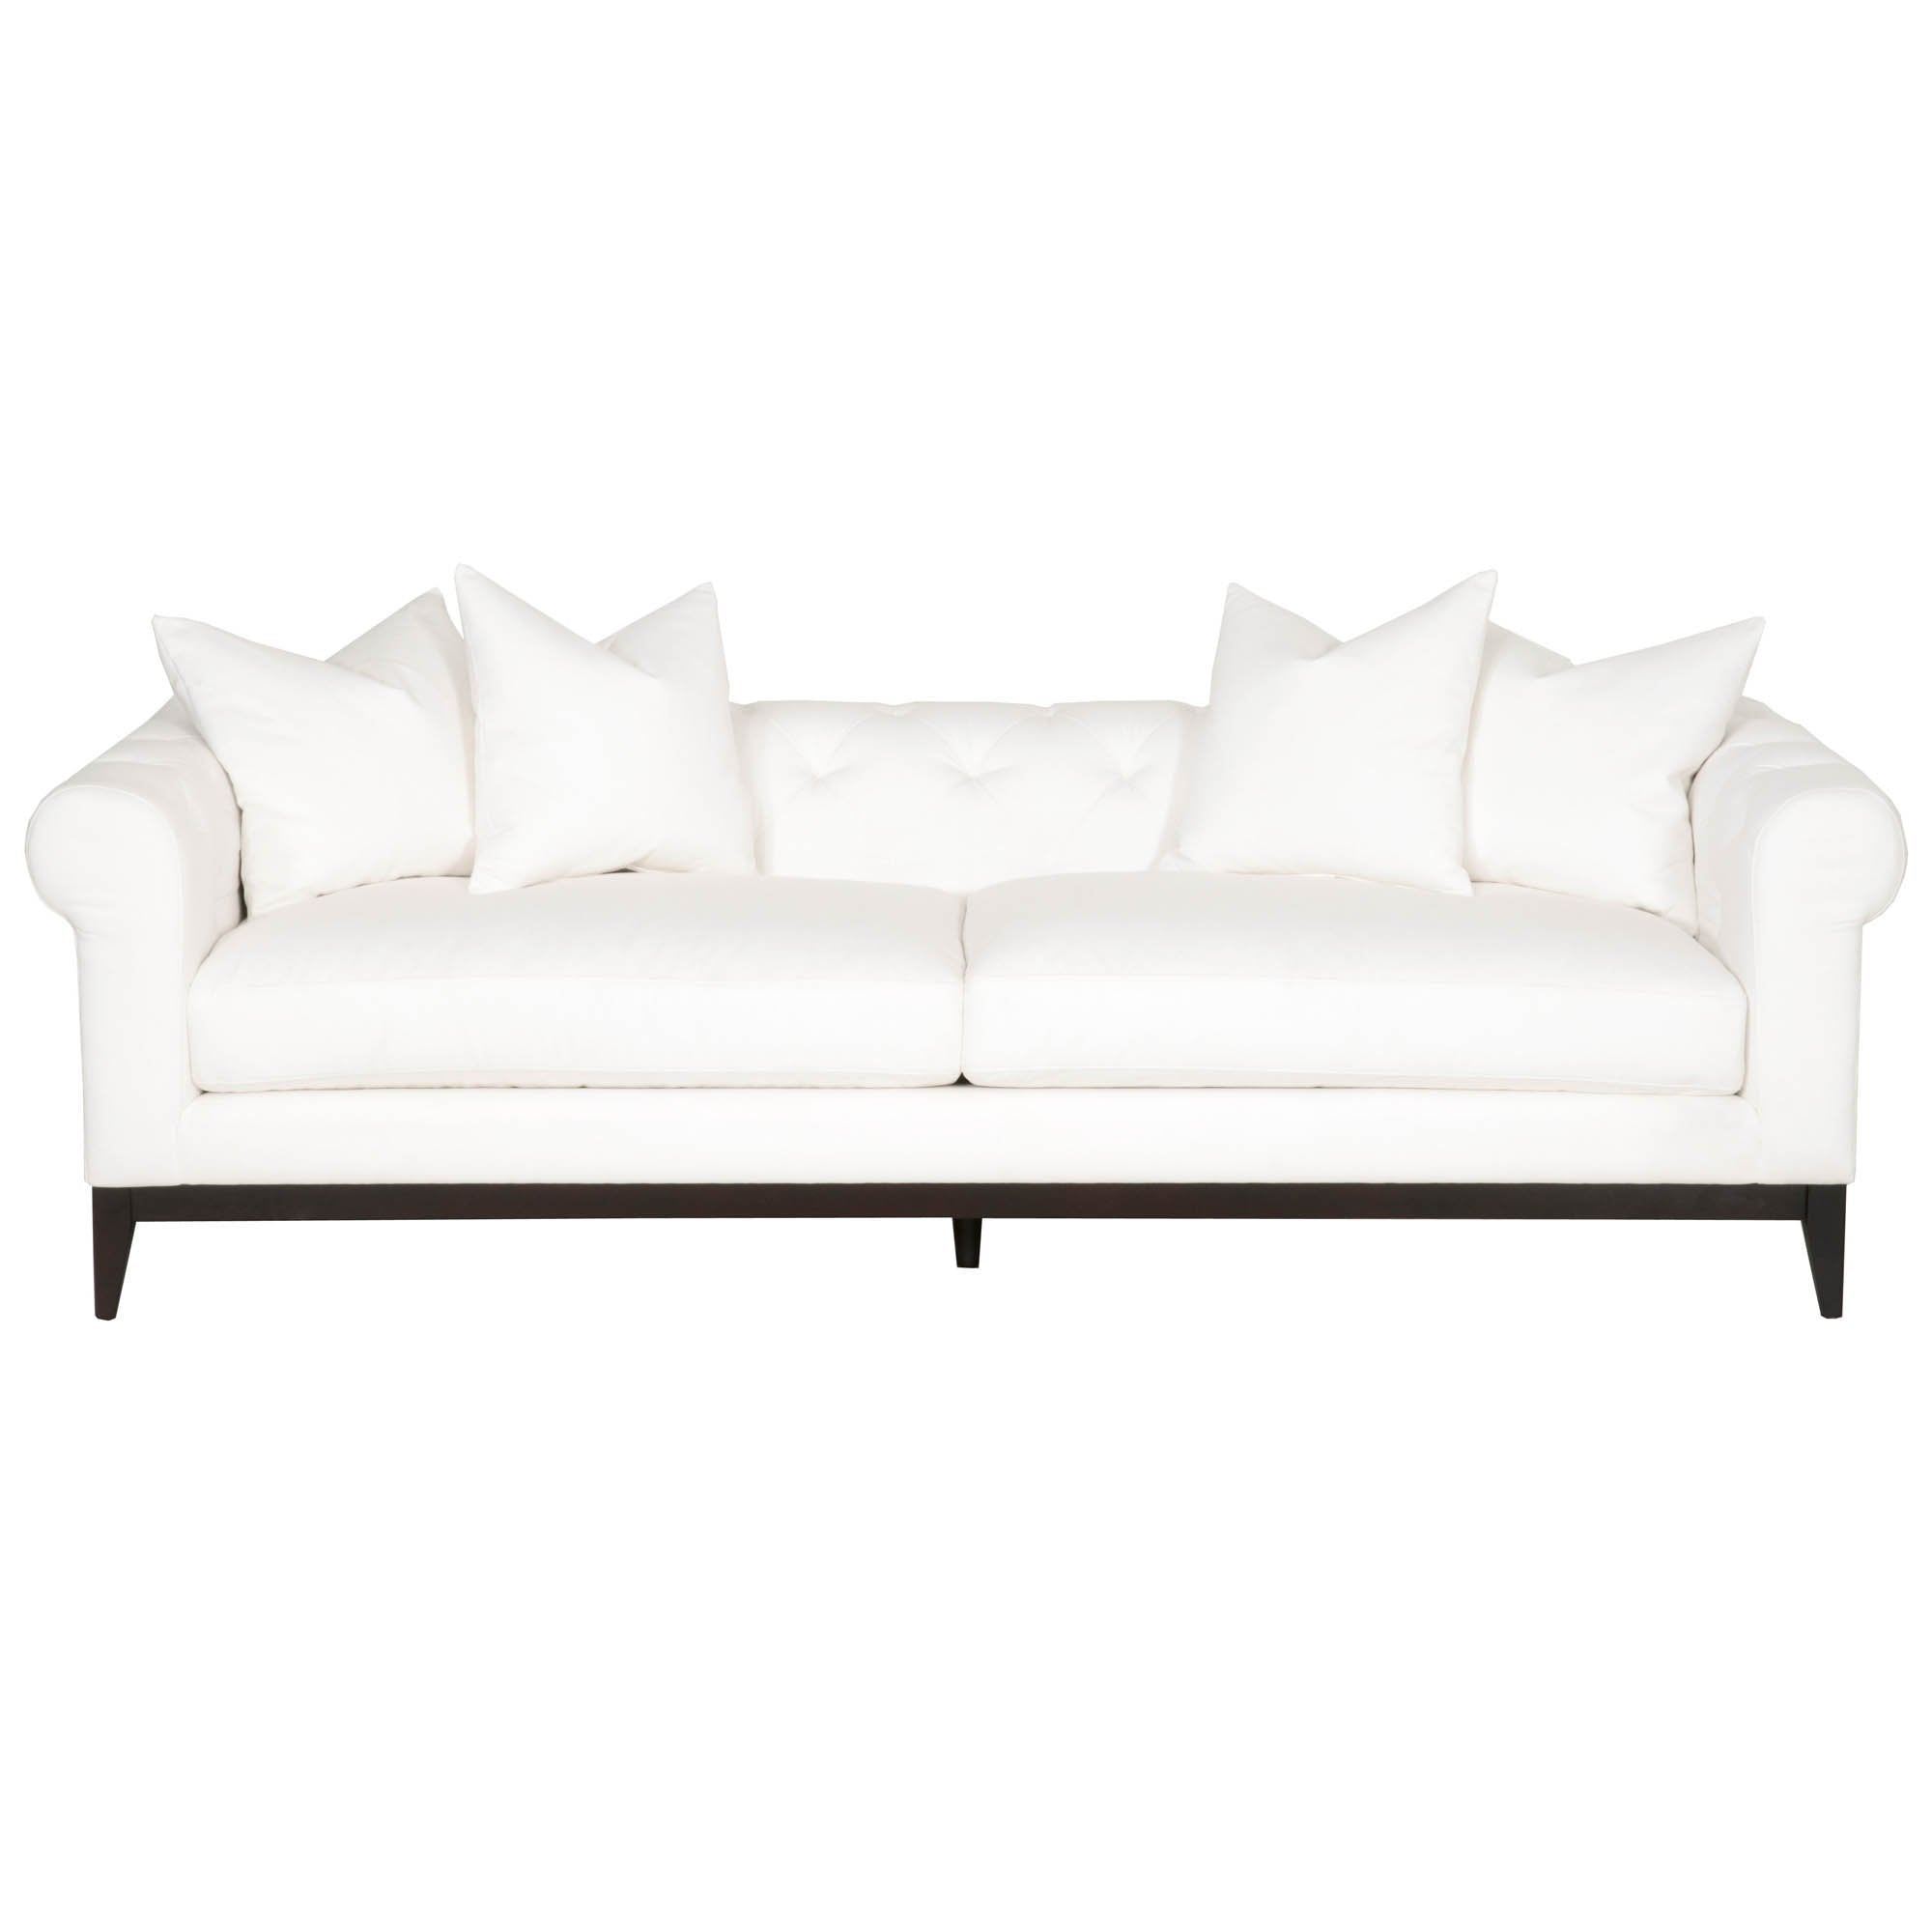 "Tux 96"" Modern Chesterfield Sofa in LiveSmart Peyton-Pearl"